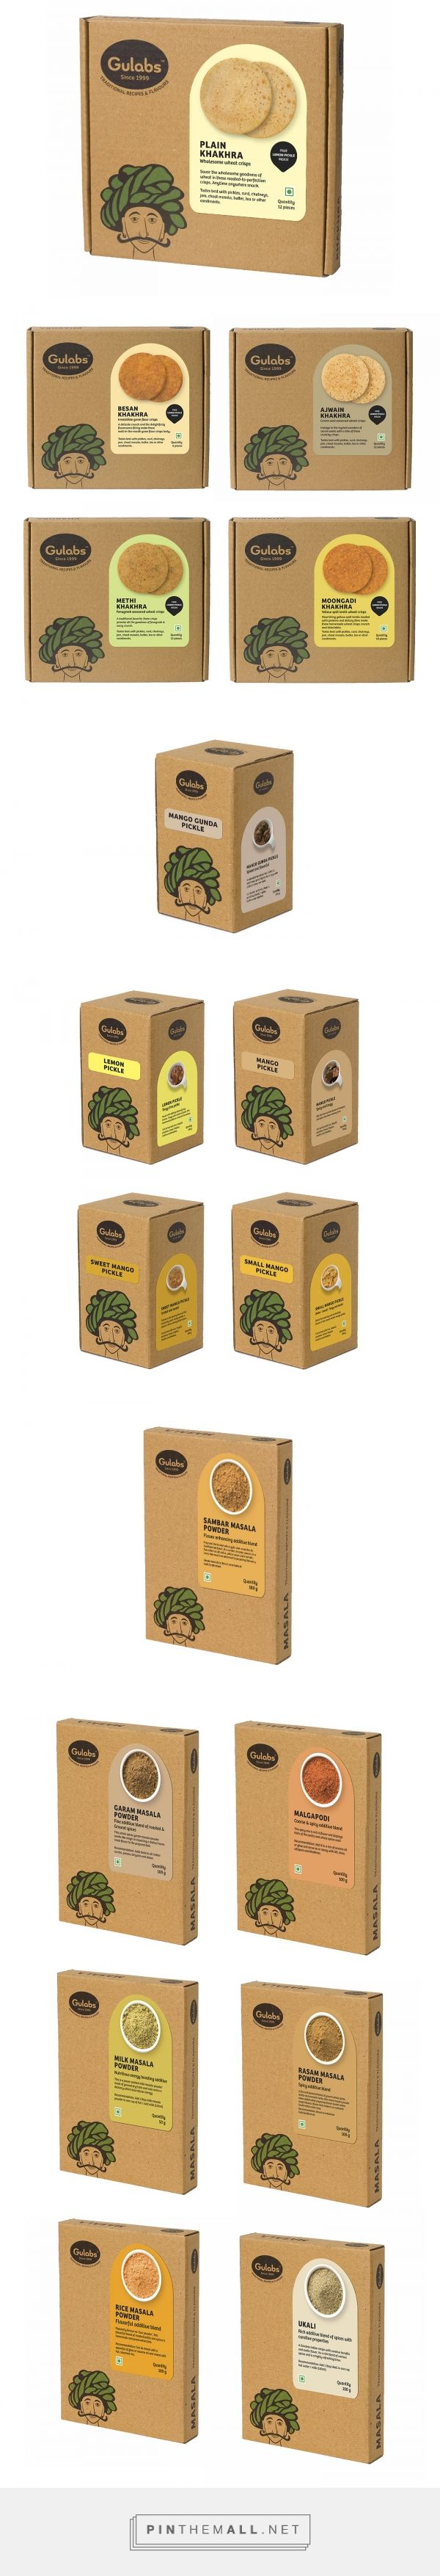 Gulabs on Behance by Impprintz Graphic Design Studio, Pune, India curated by Packaging Diva PD. Logo and packaging design system for Gulabs; a range of small scale Indian food products (snacks, condiments and spices).